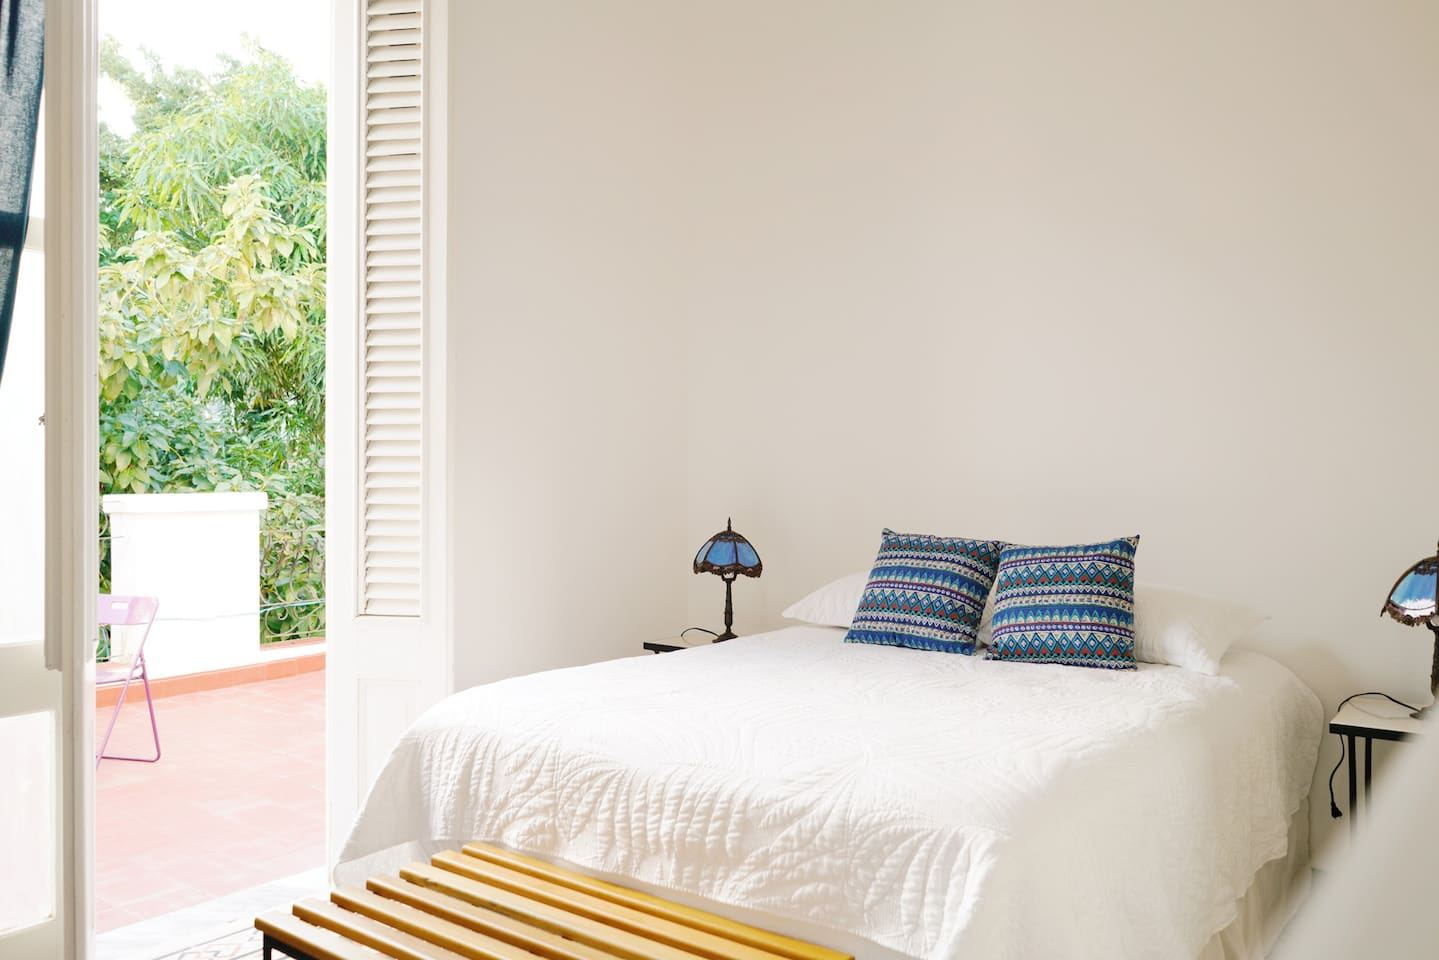 A luxury queen room with french doors leading to balcony with garden view to enjoy a morning cuban coffee and peaceful surroundings.